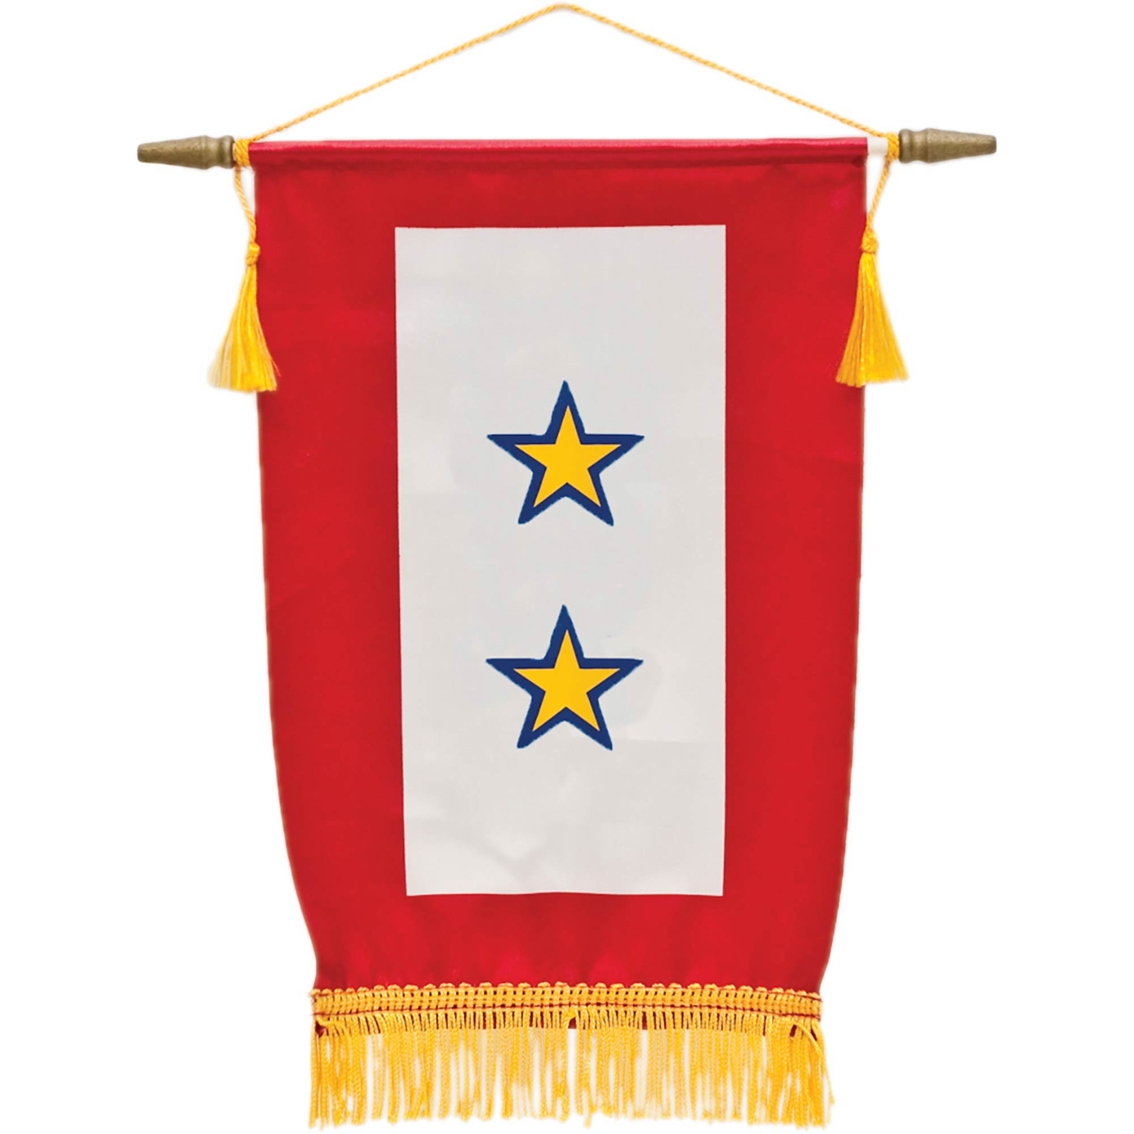 Sayre Service Flag, 2 Gold Star - Military Branch Flags - Military - Shop The Exchange - 웹